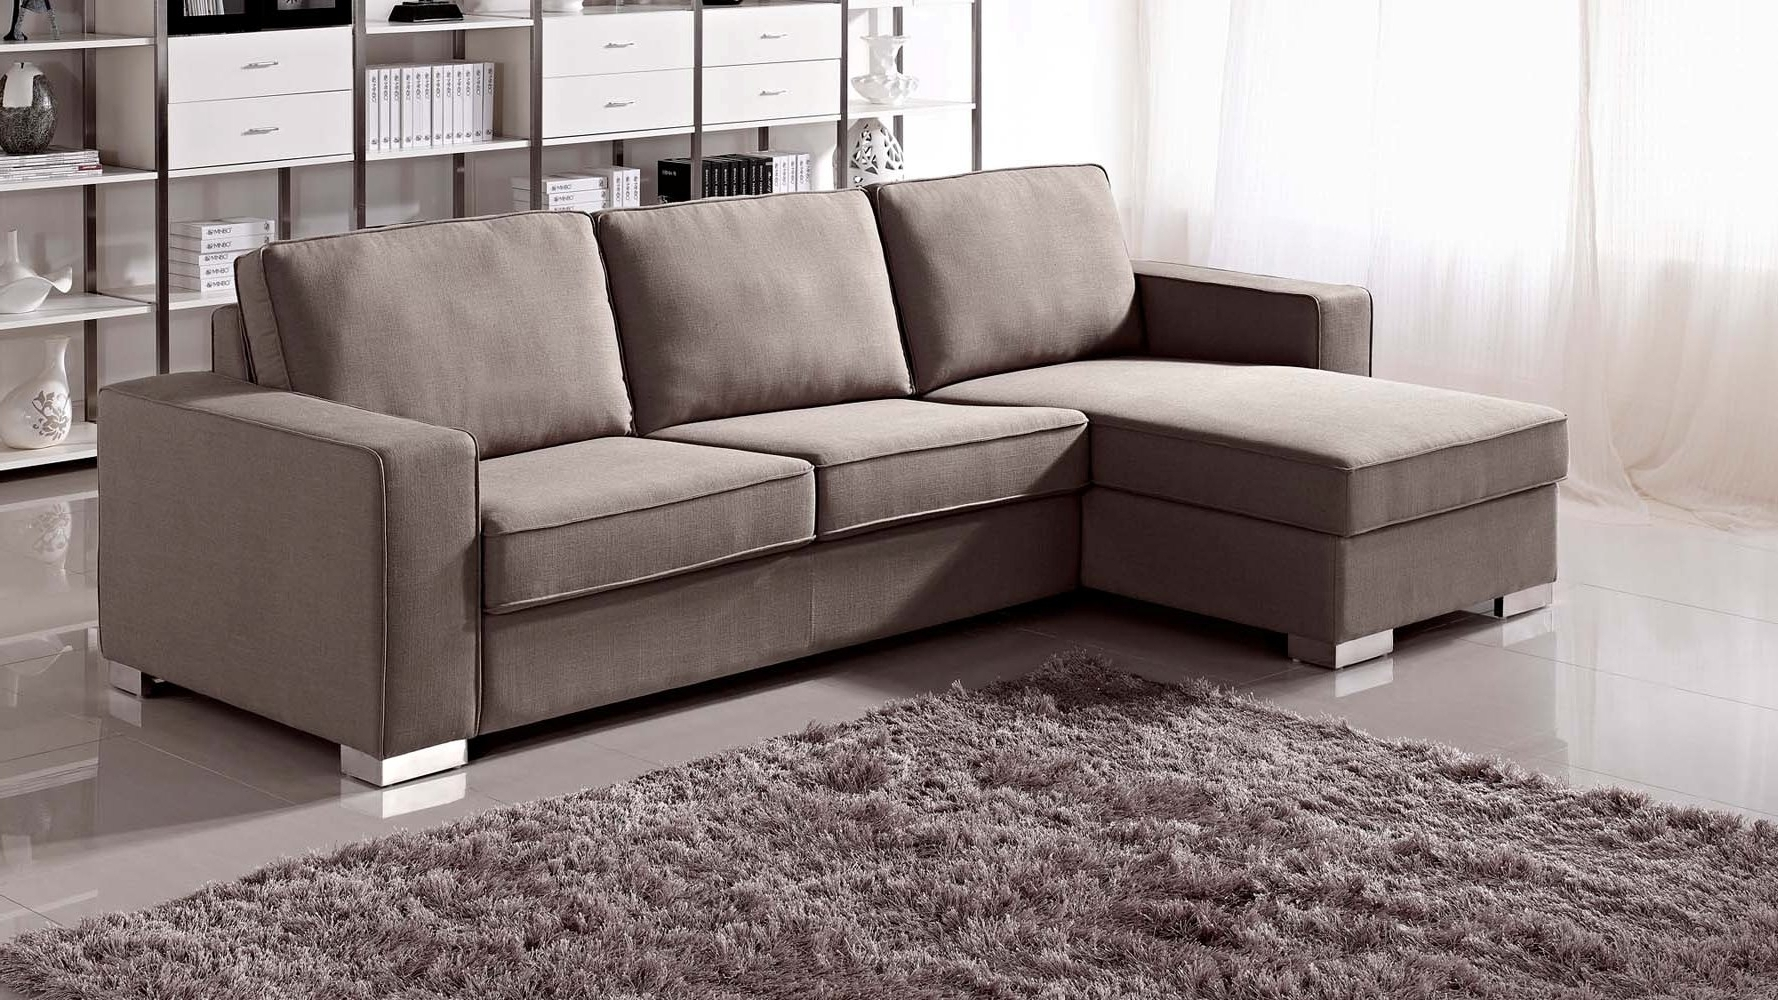 Well Liked Innovative Sofa Sleeper Sectionals Beautiful Interior Design Style Regarding Chaise Sofa Sleepers (View 8 of 15)